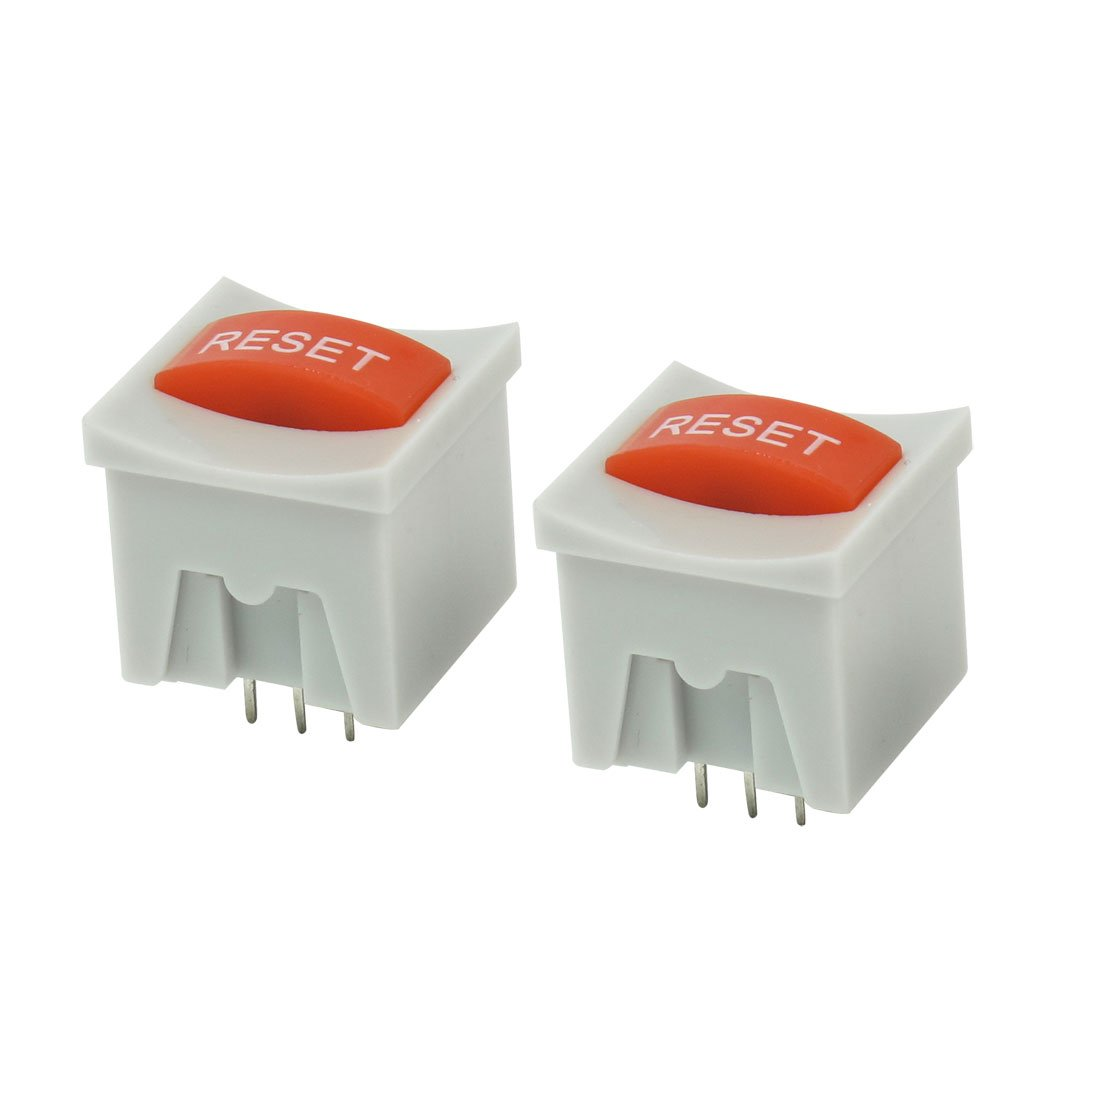 Uxcell AC 250V 5 Amp RESET Word Pattern Momentary Push Button Switch 2 Piece